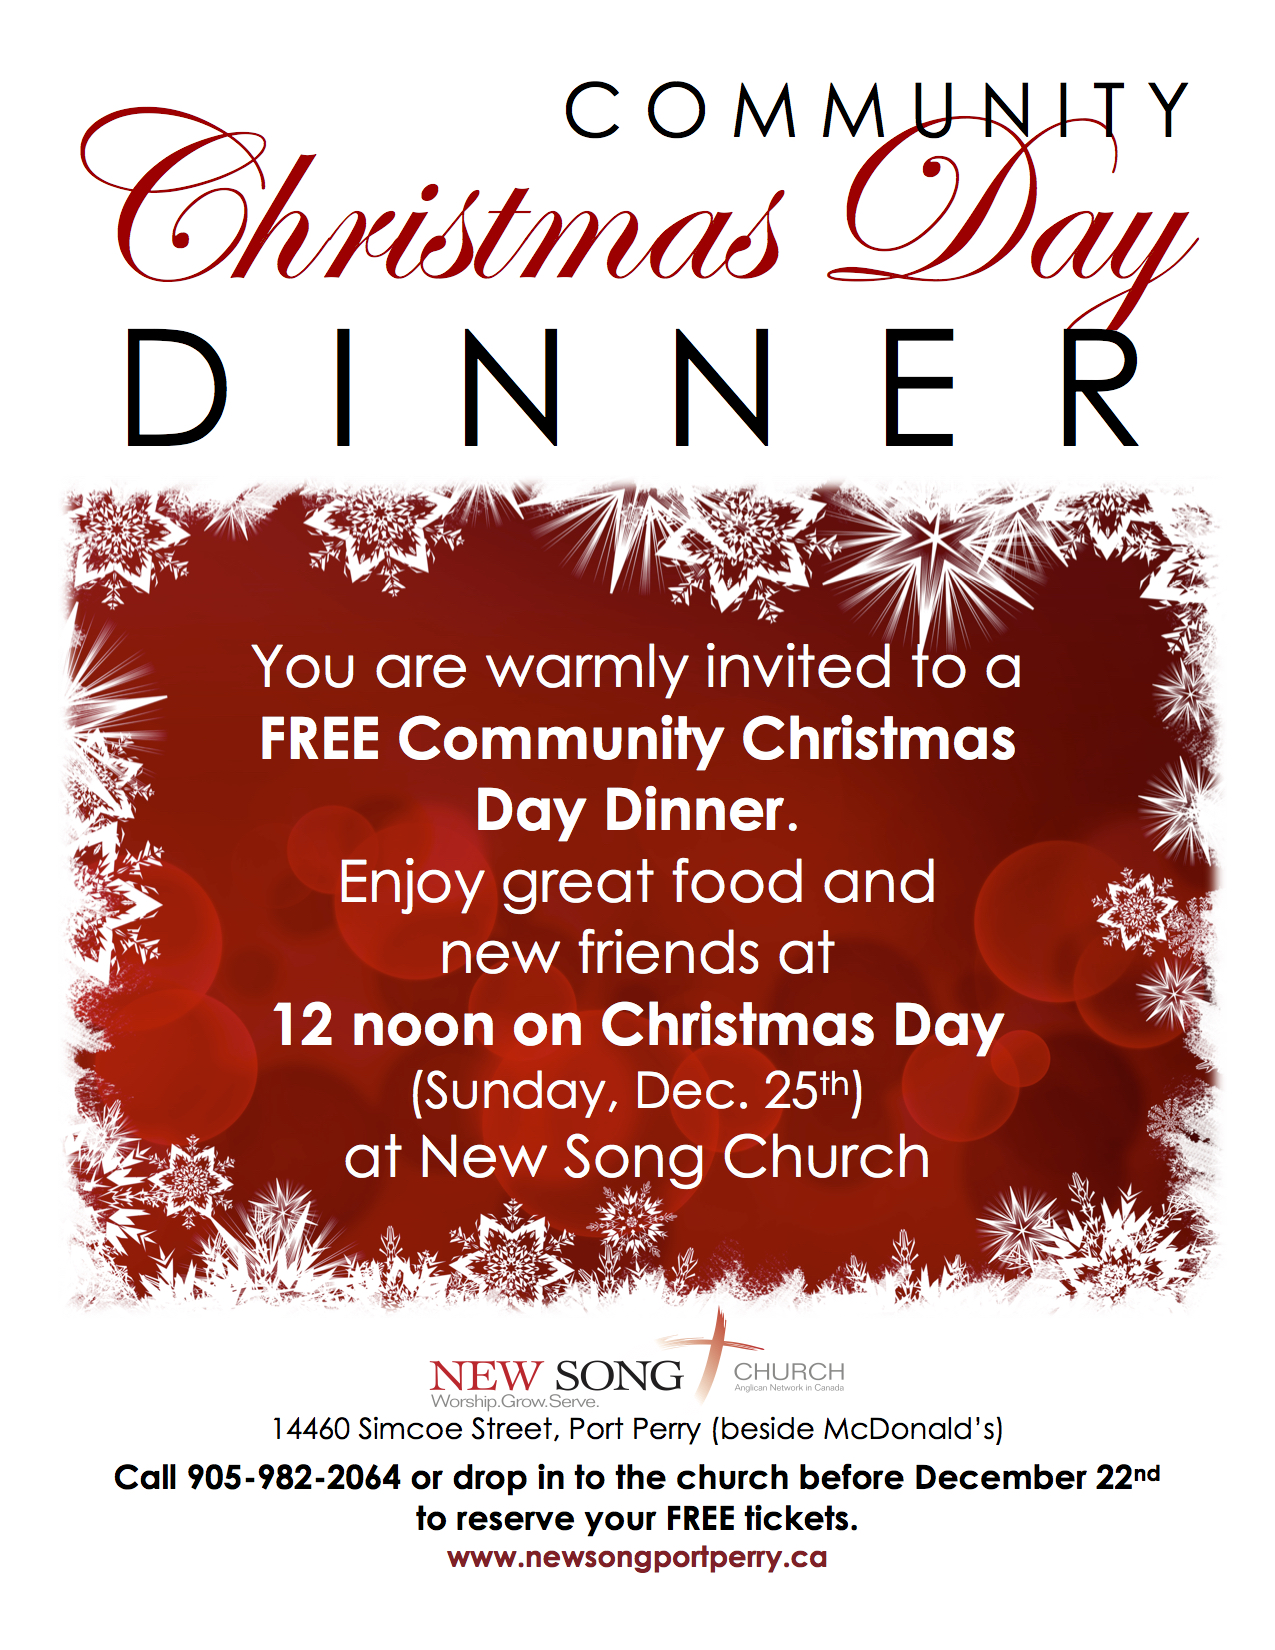 Church Christmas Dinner.Christmas Day Service Community Christmas Dinner New Song Church